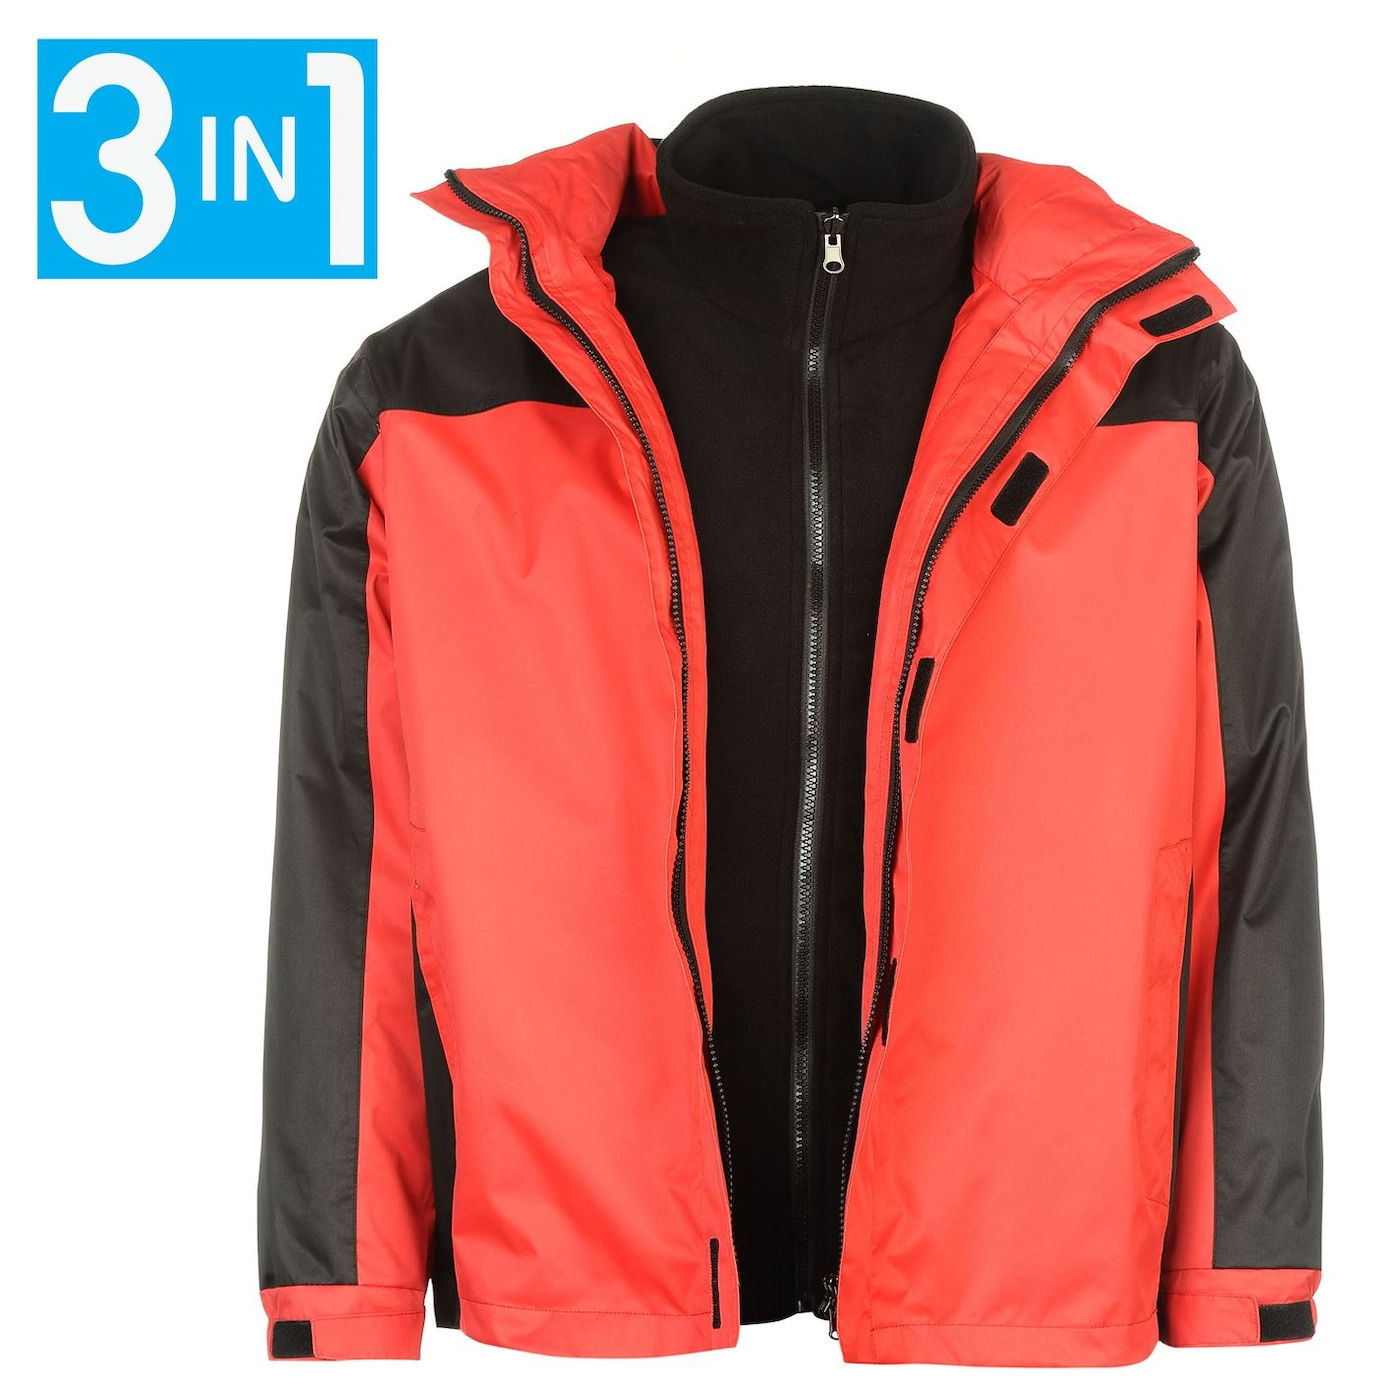 Donnay 3in1 Jacket Mens